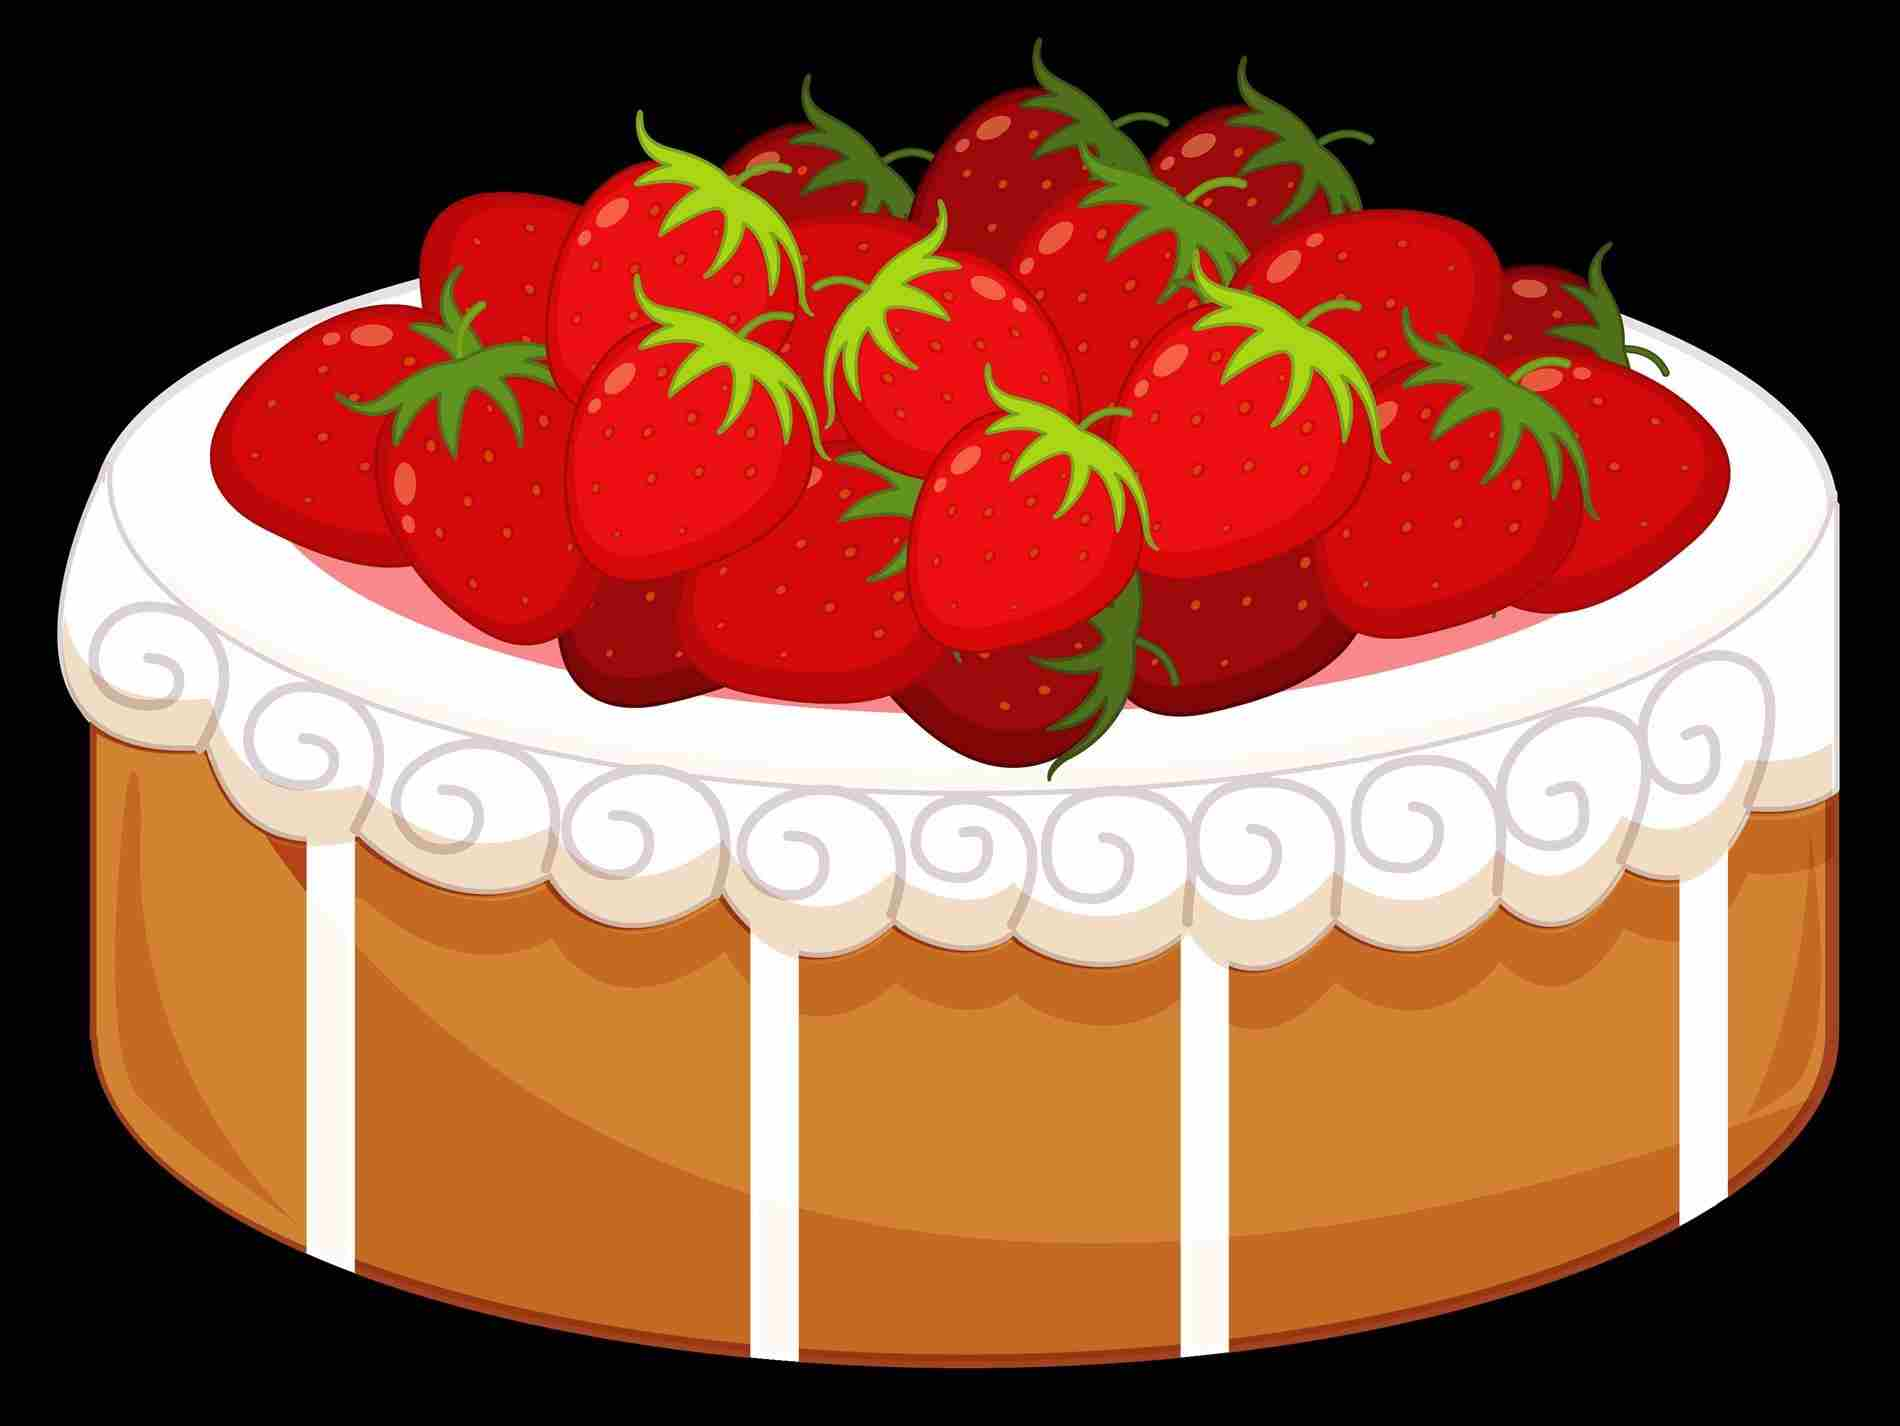 Desserts clipart cake. Dessert transparent with strawberries